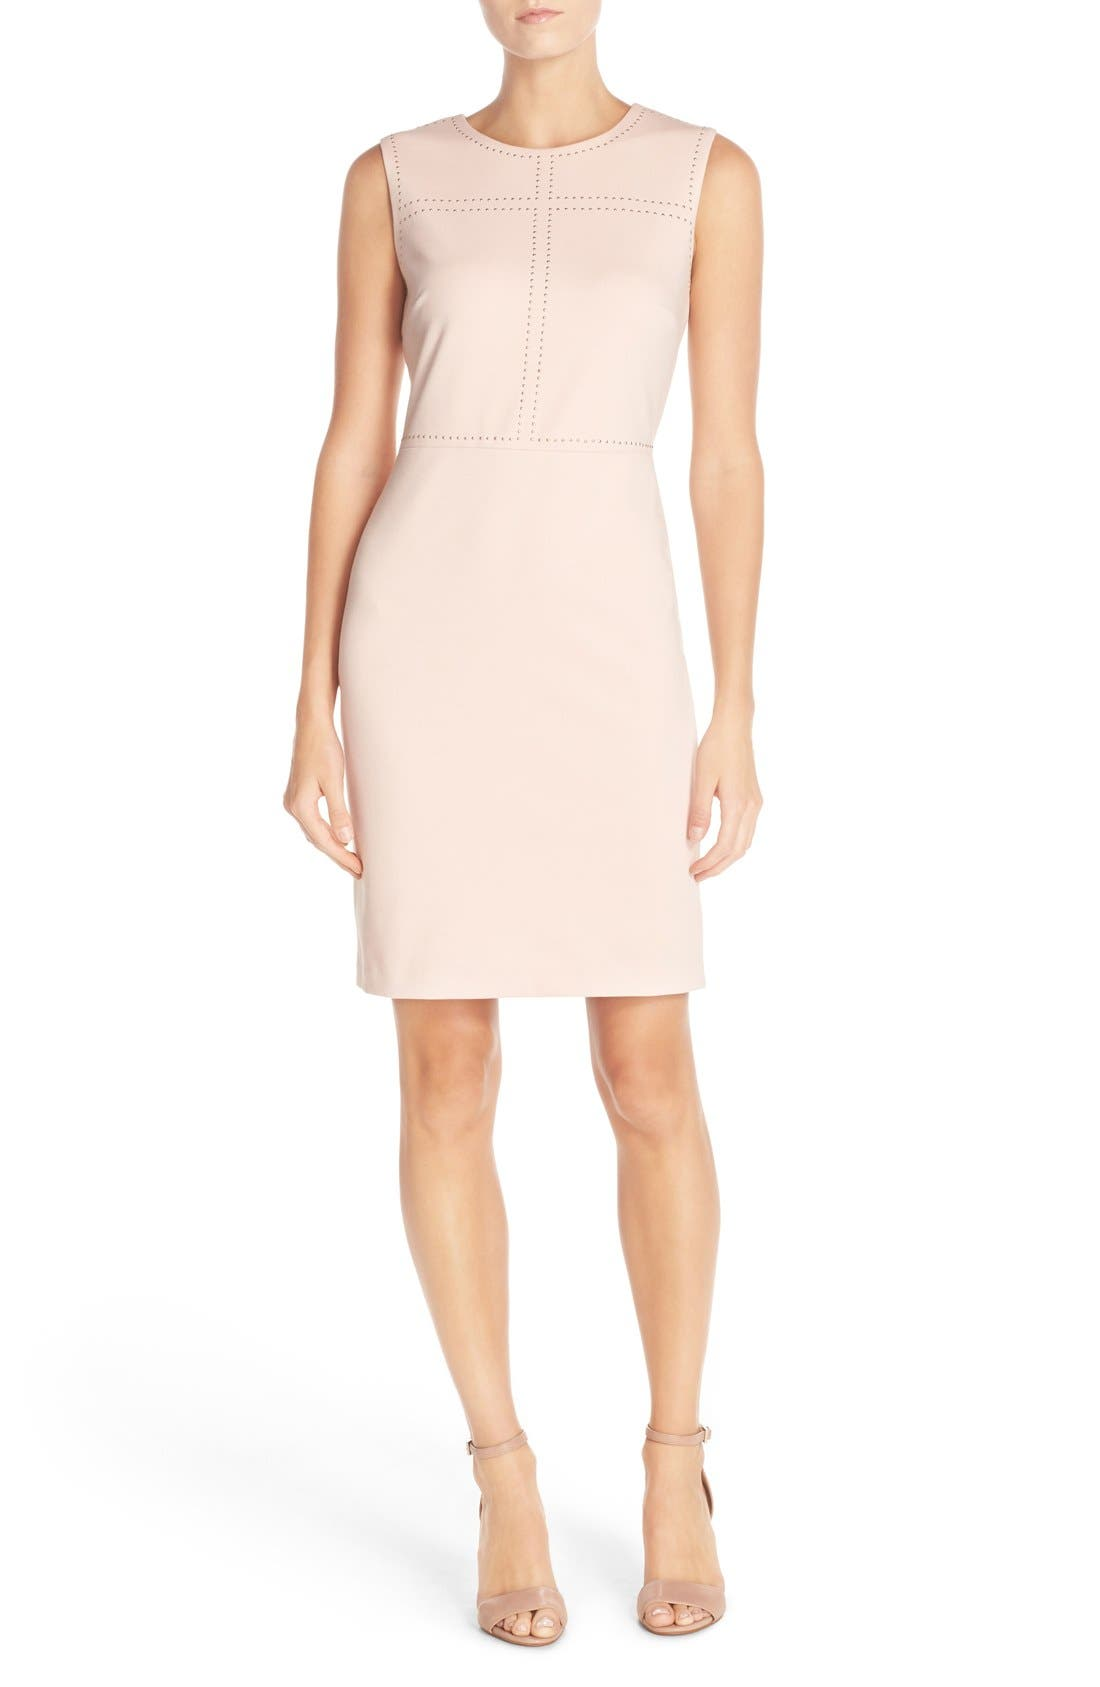 IVANKA TRUMP Sleeveless Sheath Dress, Main, color, 650